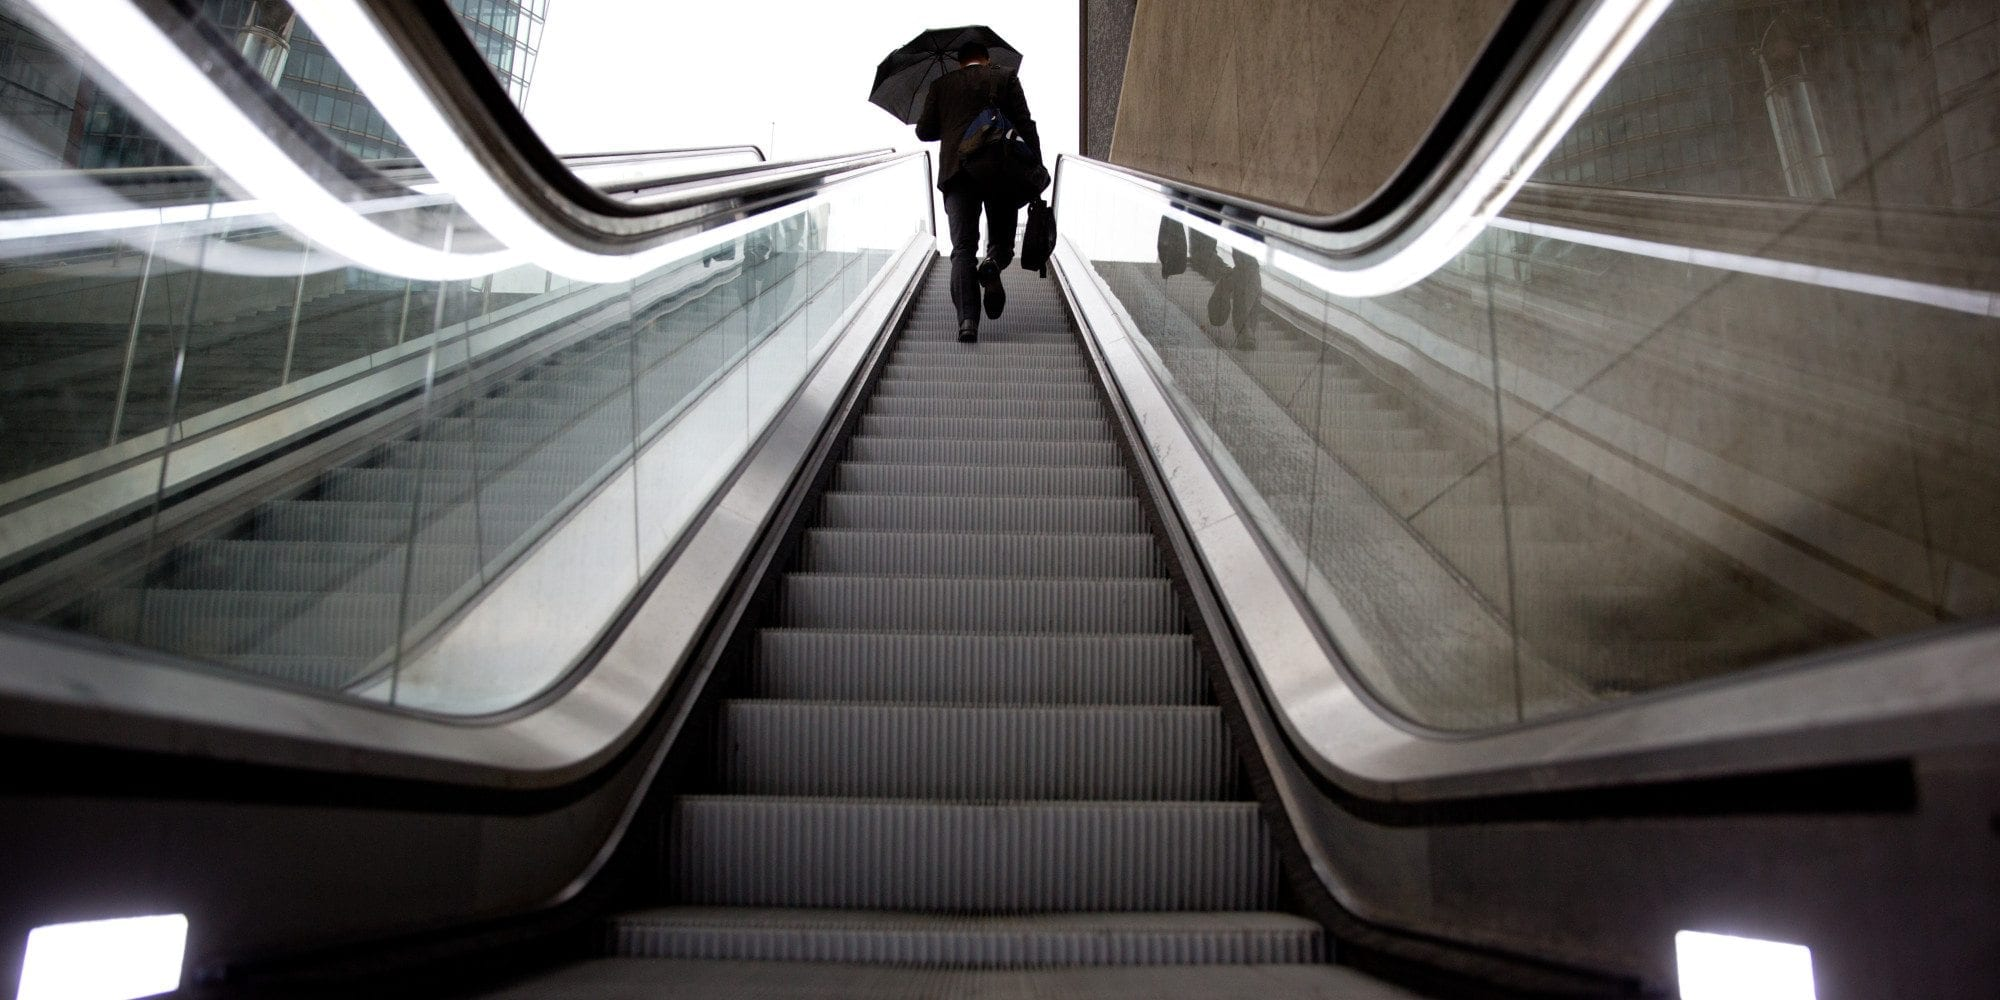 A man uses an umbrella to shelter from the rain as he takes an escalator at Potsdamer Platz square on September 9, 2013 in Berlin. Temperatures in the German capital were around 14 degrees Celsius. AFP PHOTO / DPA / KAY NIETFELD / GERMANY OUT (Photo credit should read KAY NIETFELD/AFP/Getty Images)